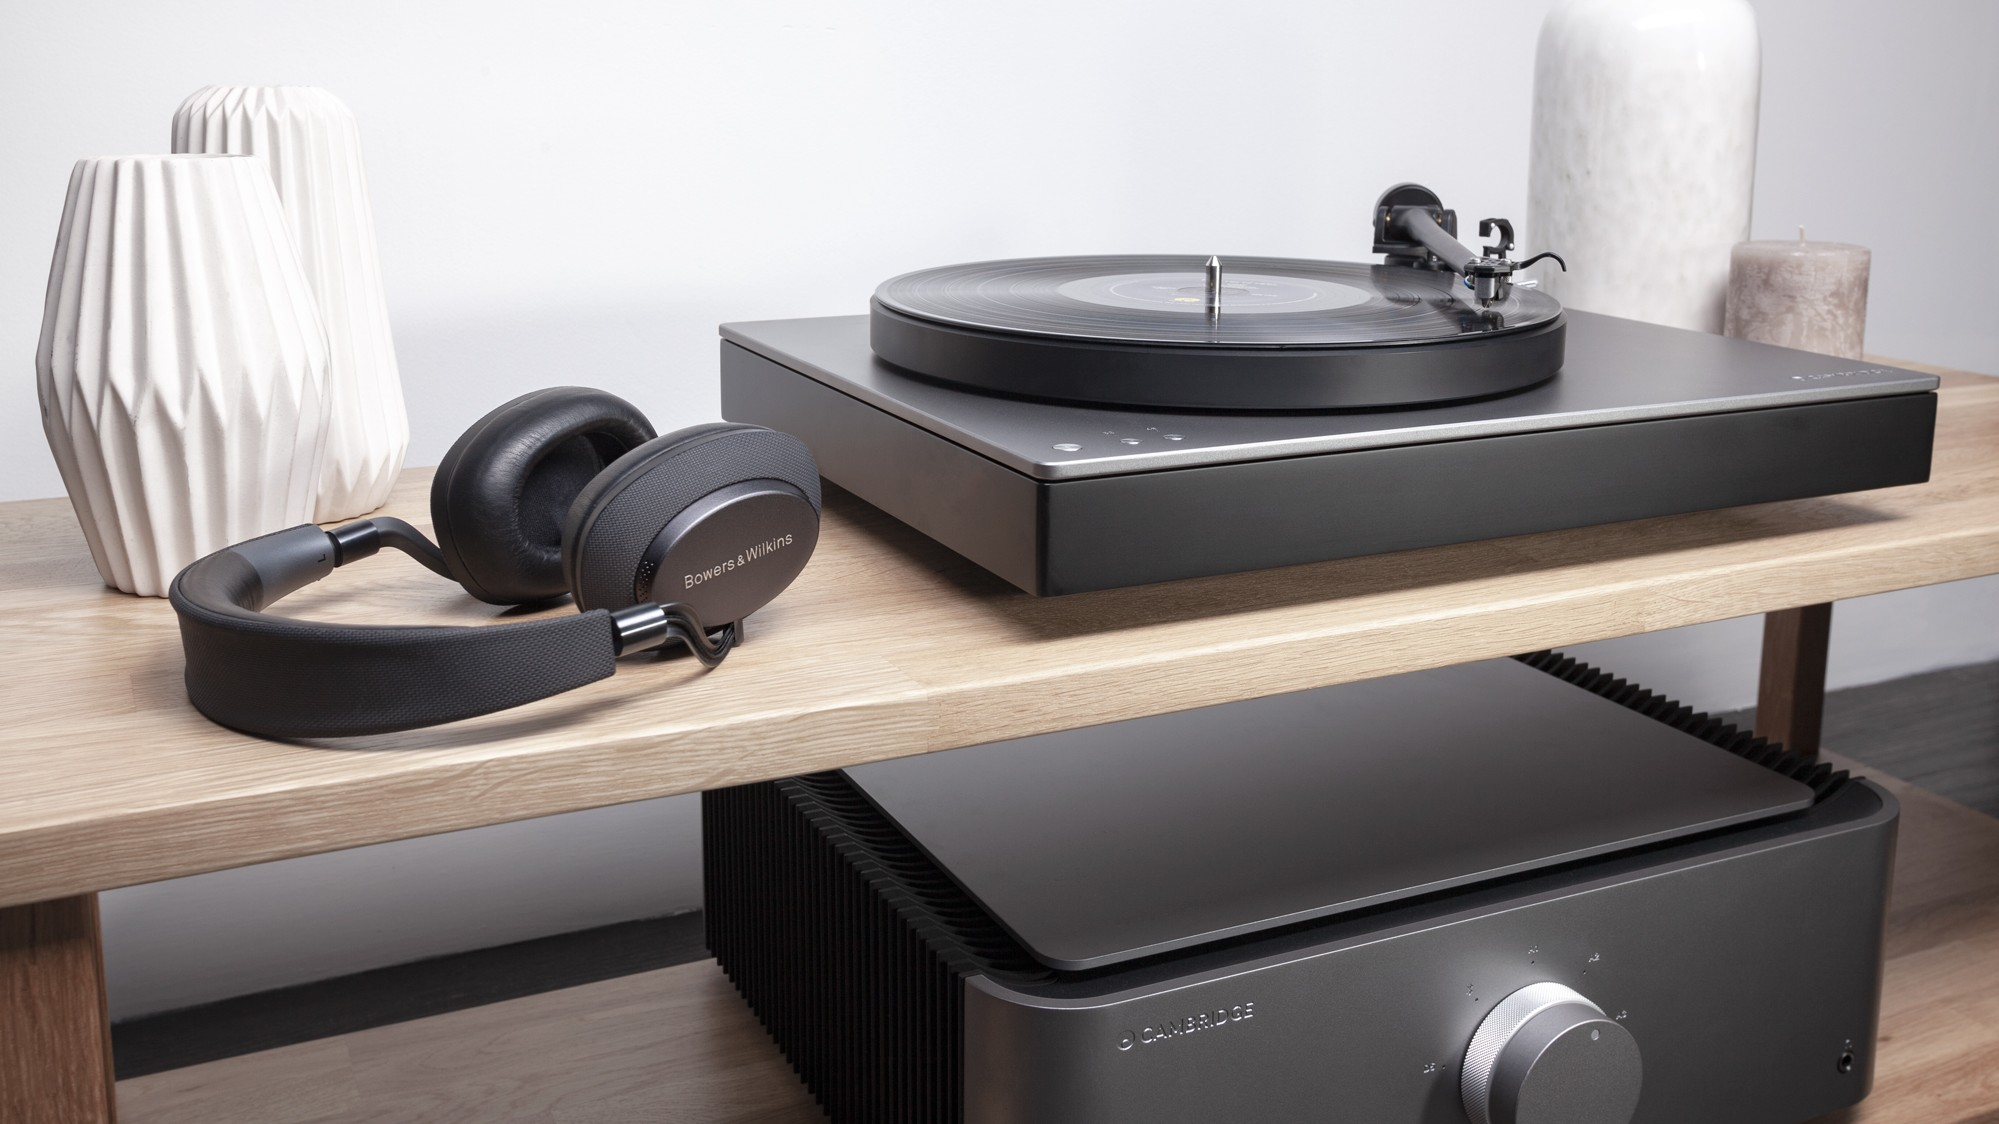 Cambridge Audio launches first turntable to support AptX HD wireless audio